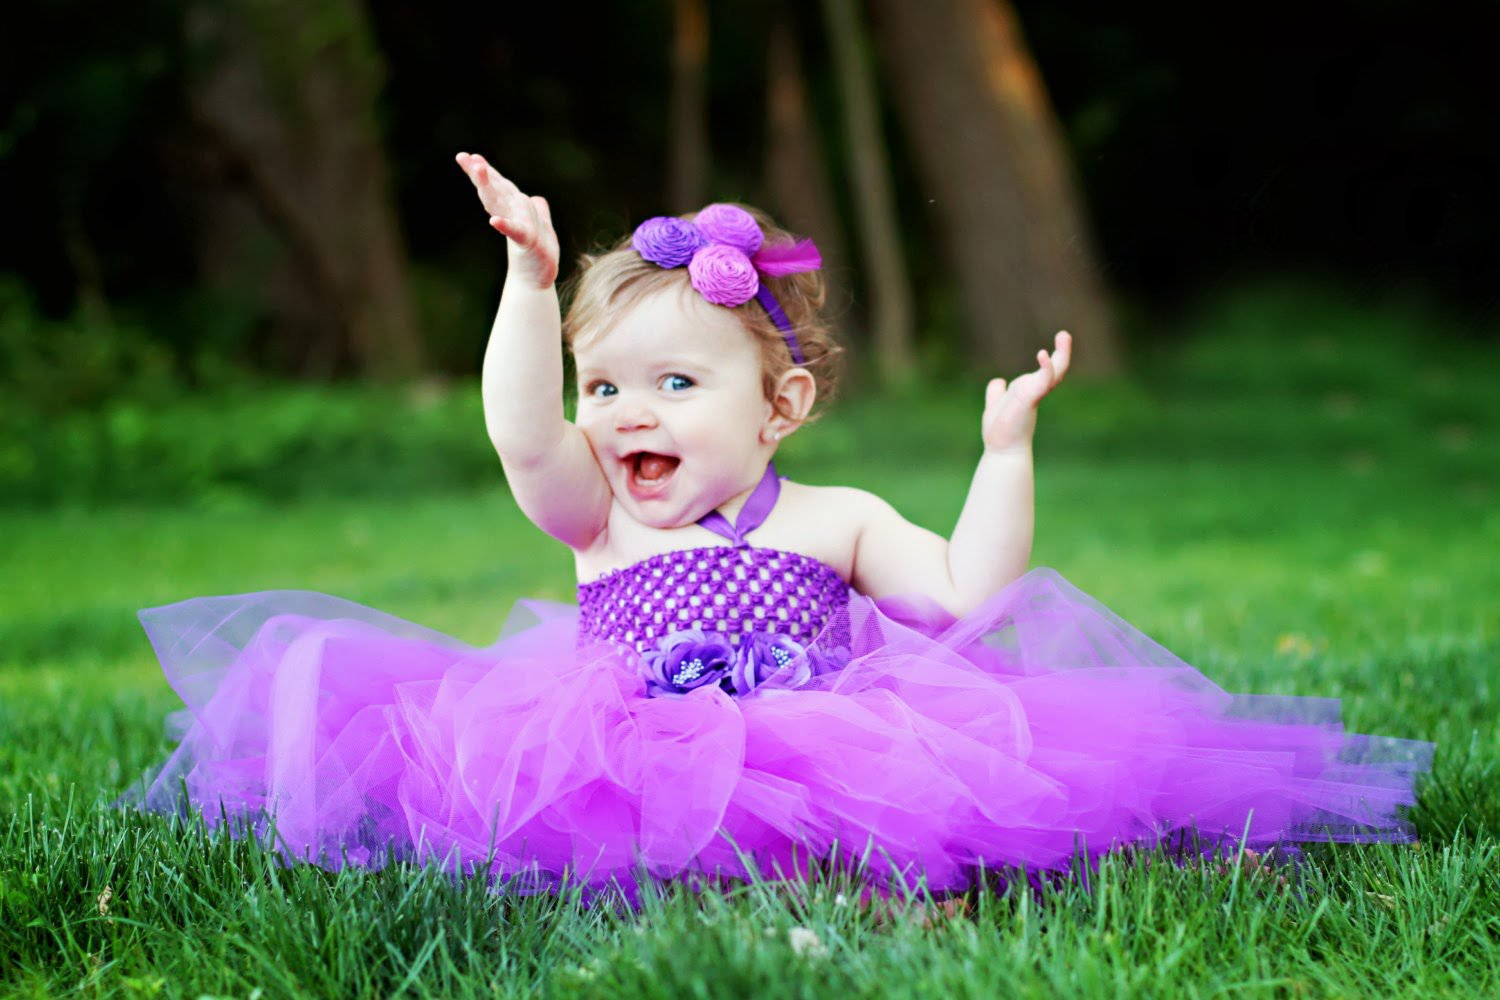 Cute Baby Images Free Download For Mobile: Cute Baby Girl Pictures Wallpapers